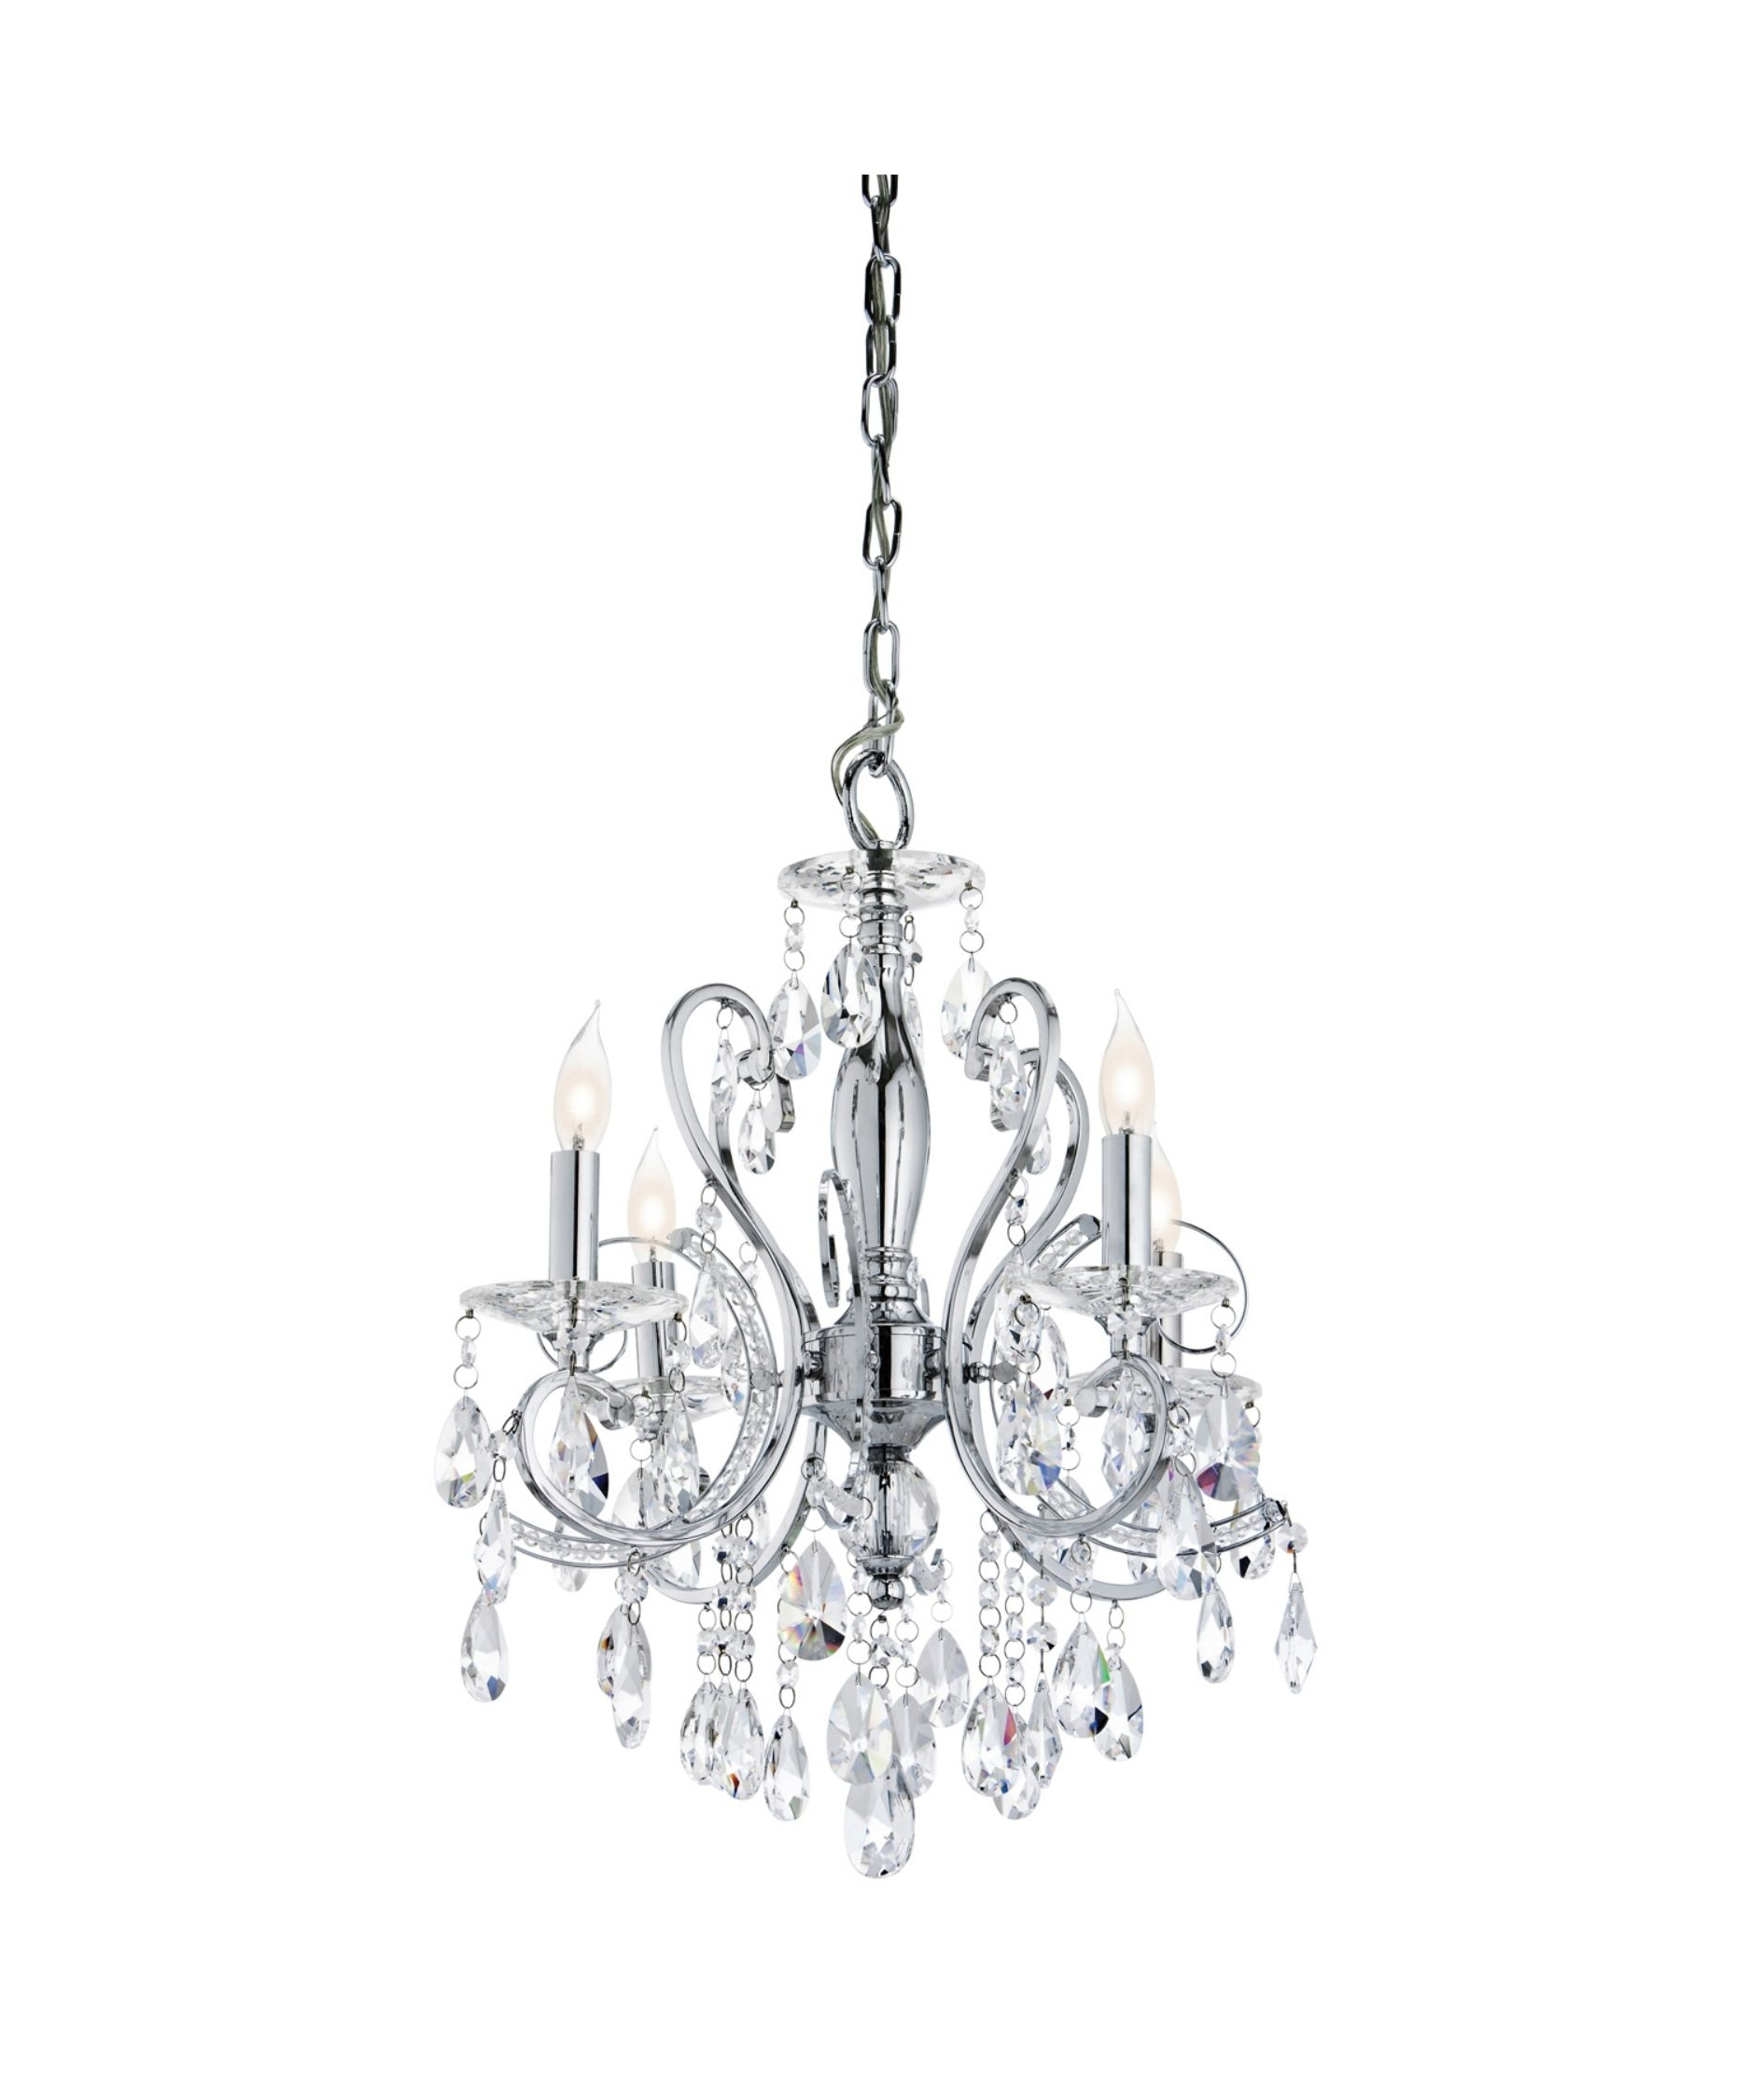 Small Rustic Crystal Chandeliers Pertaining To Most Current Nice Mini Chandelier For Bathroom #7 Mini Crystal Chandelier (View 16 of 20)